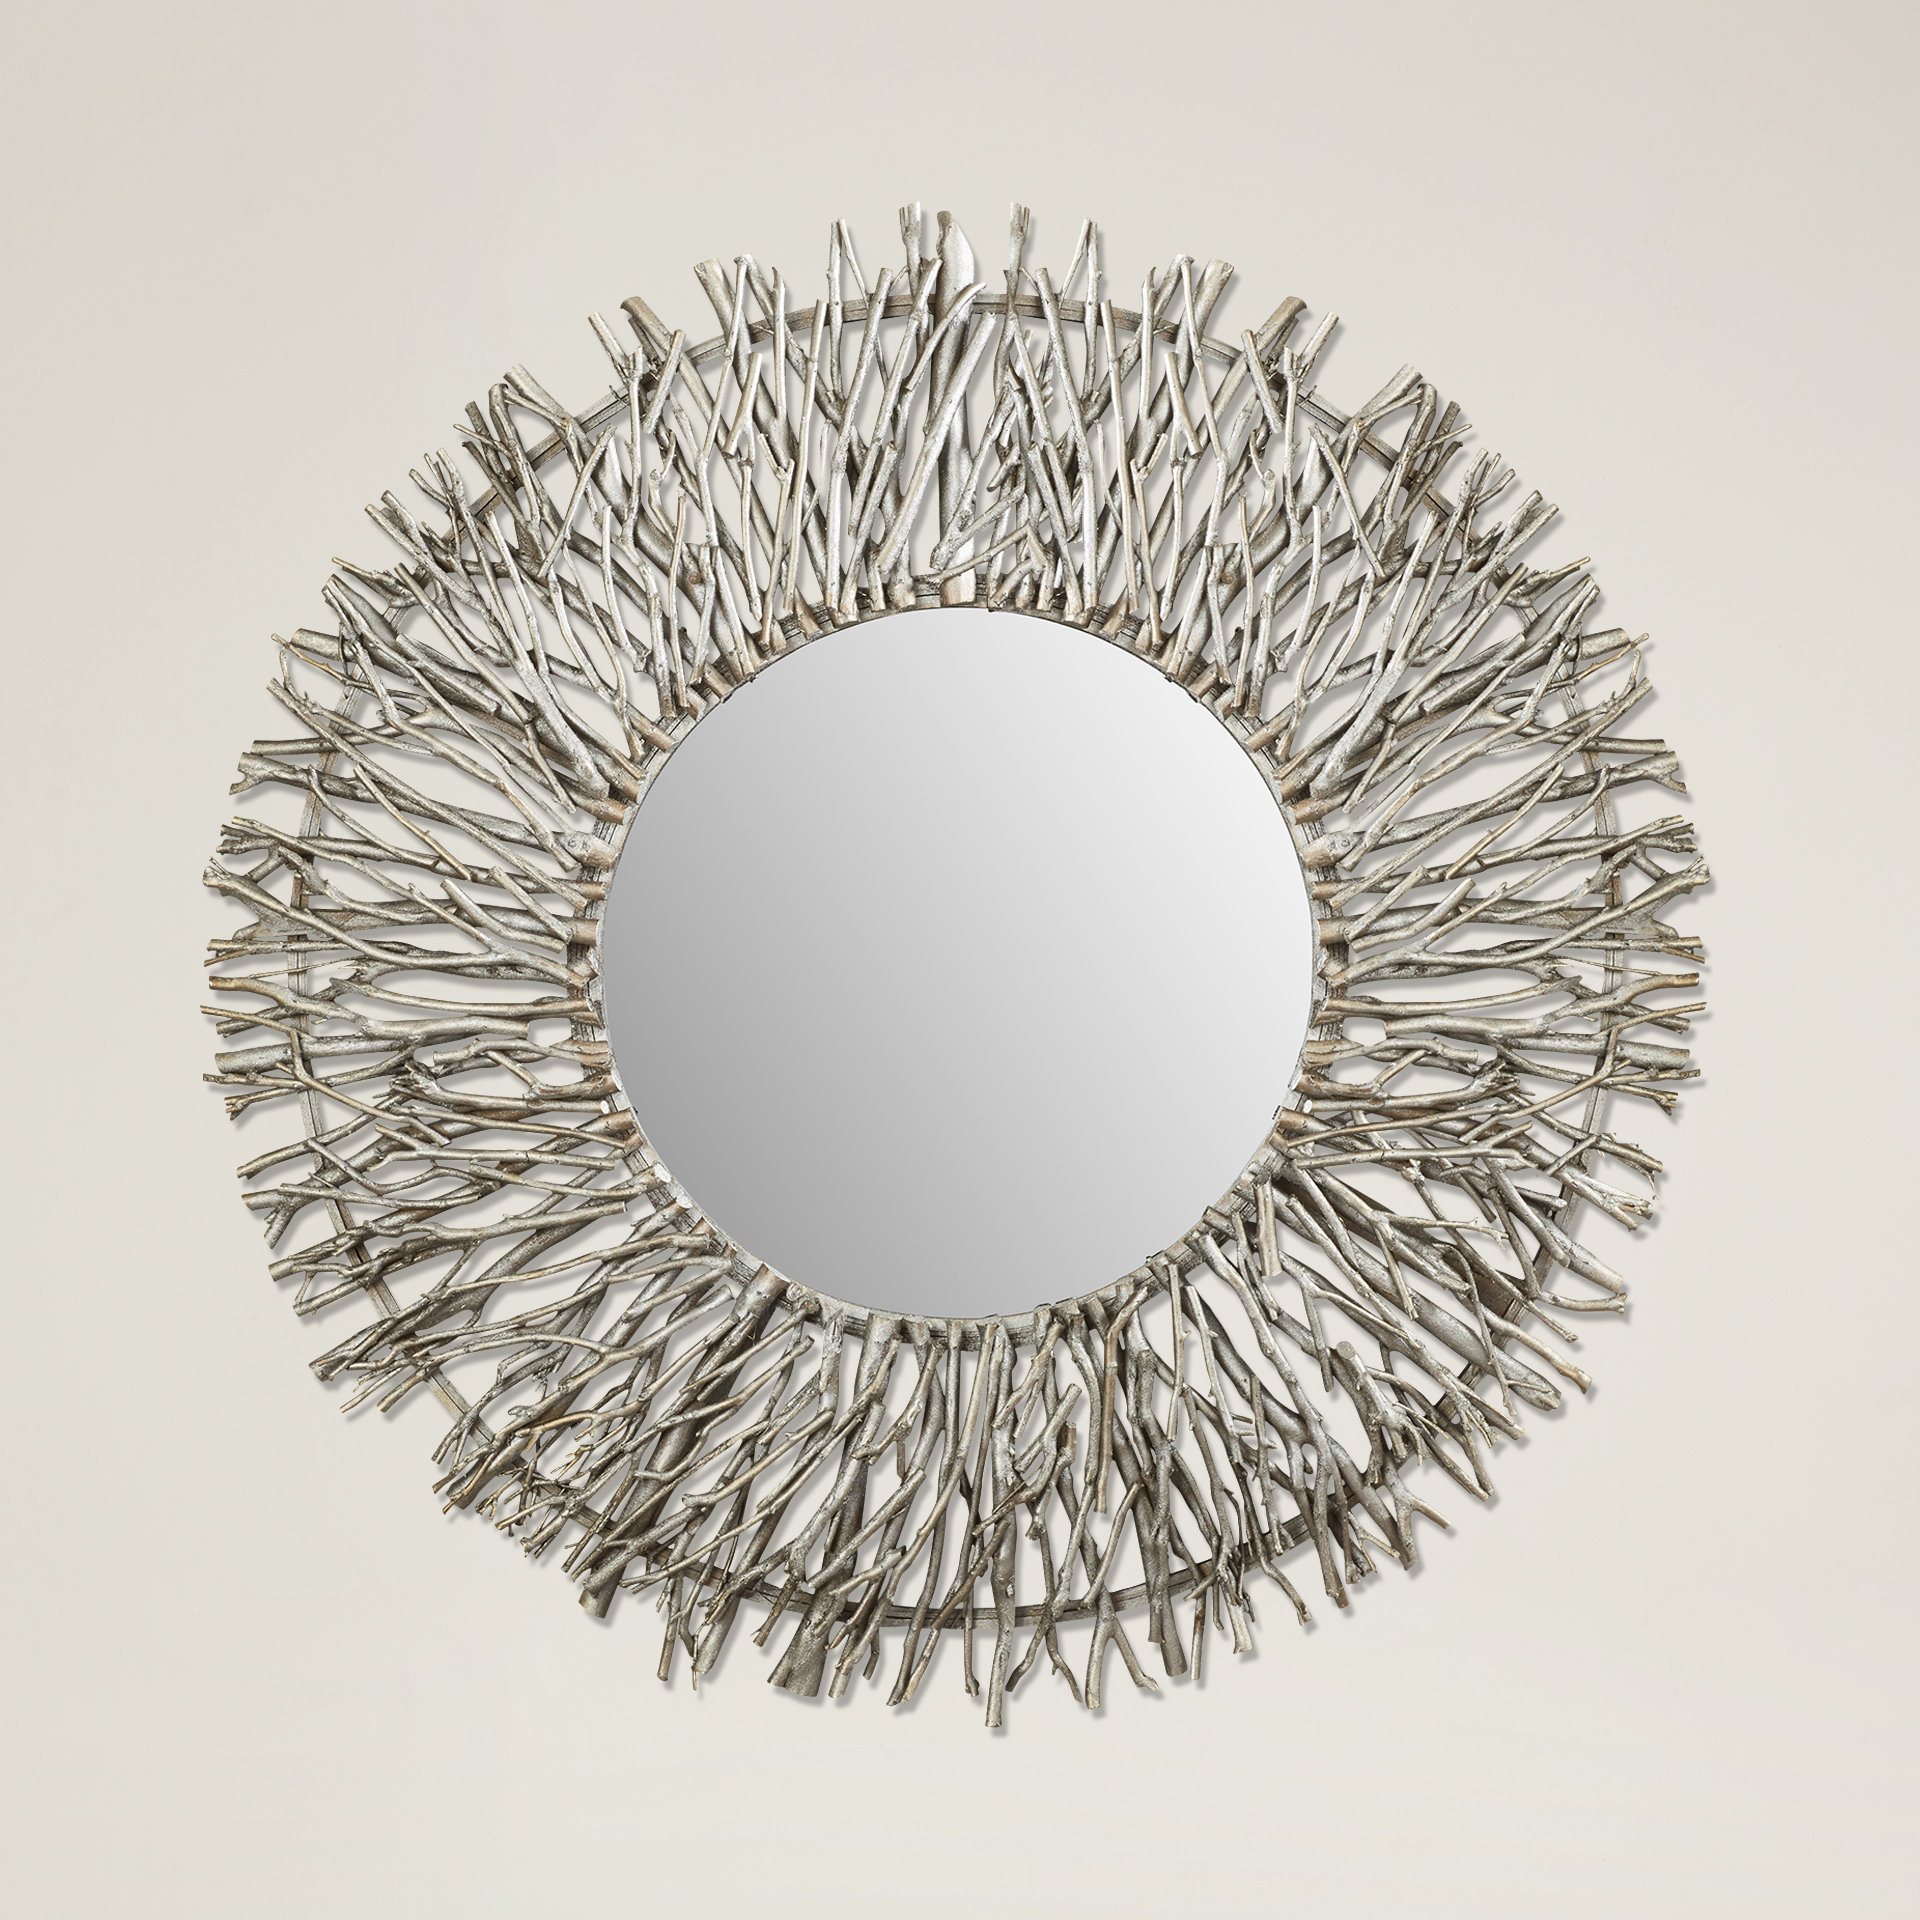 Cromartie Tree Branch Wall Mirror With Karn Vertical Round Resin Wall Mirrors (View 8 of 20)